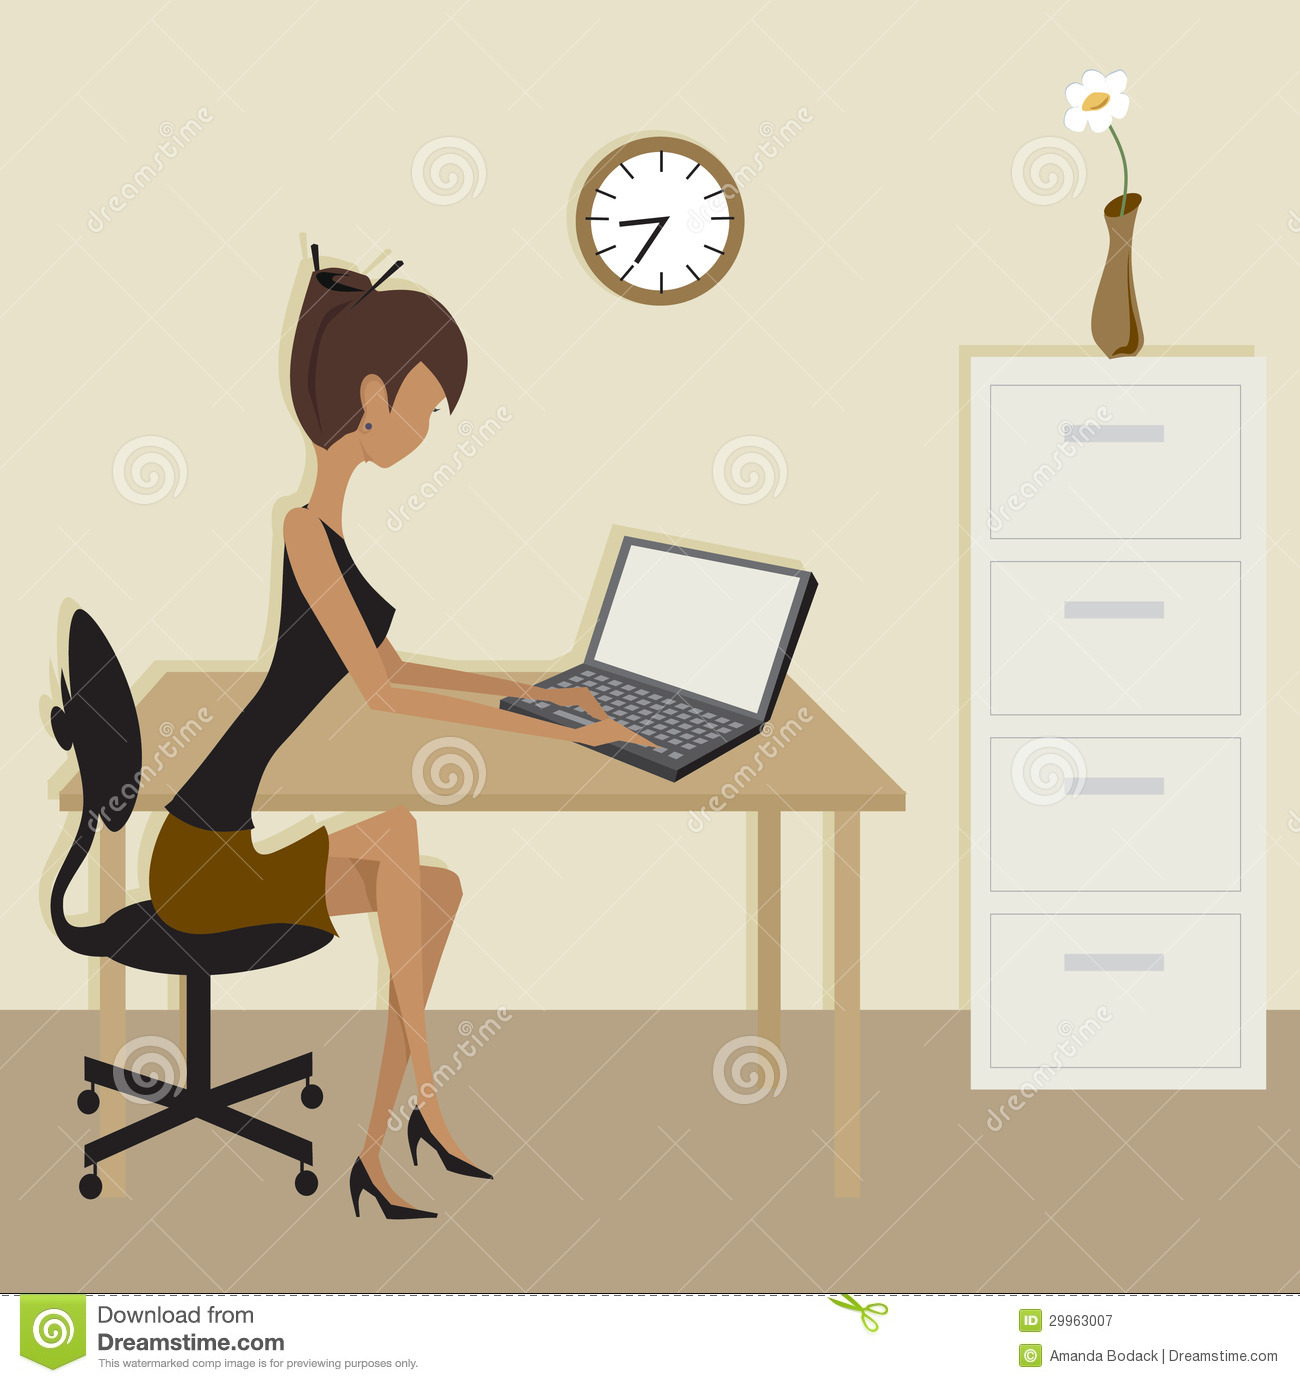 Simple Clip Art Office Scene Stock Vector Illustration